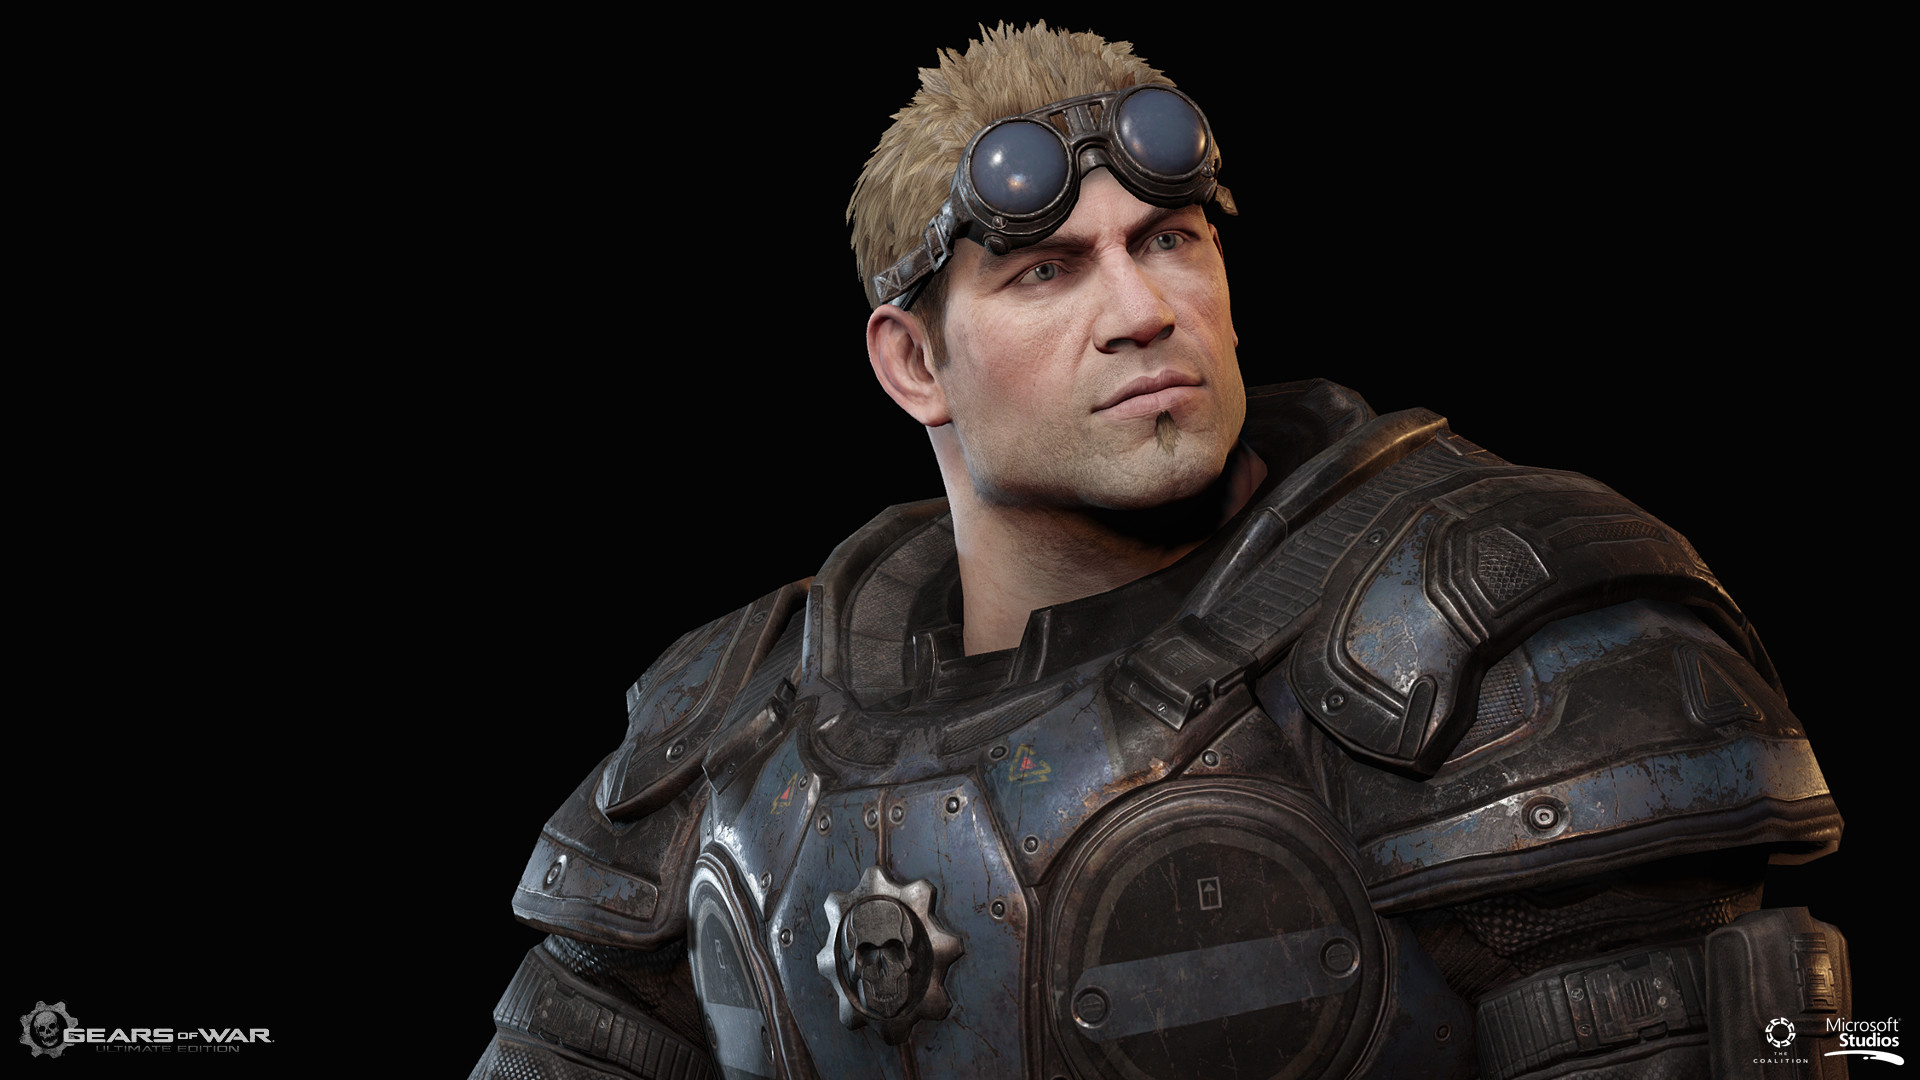 ArtStation - Gears of War Ultimate edition : Damon Baird